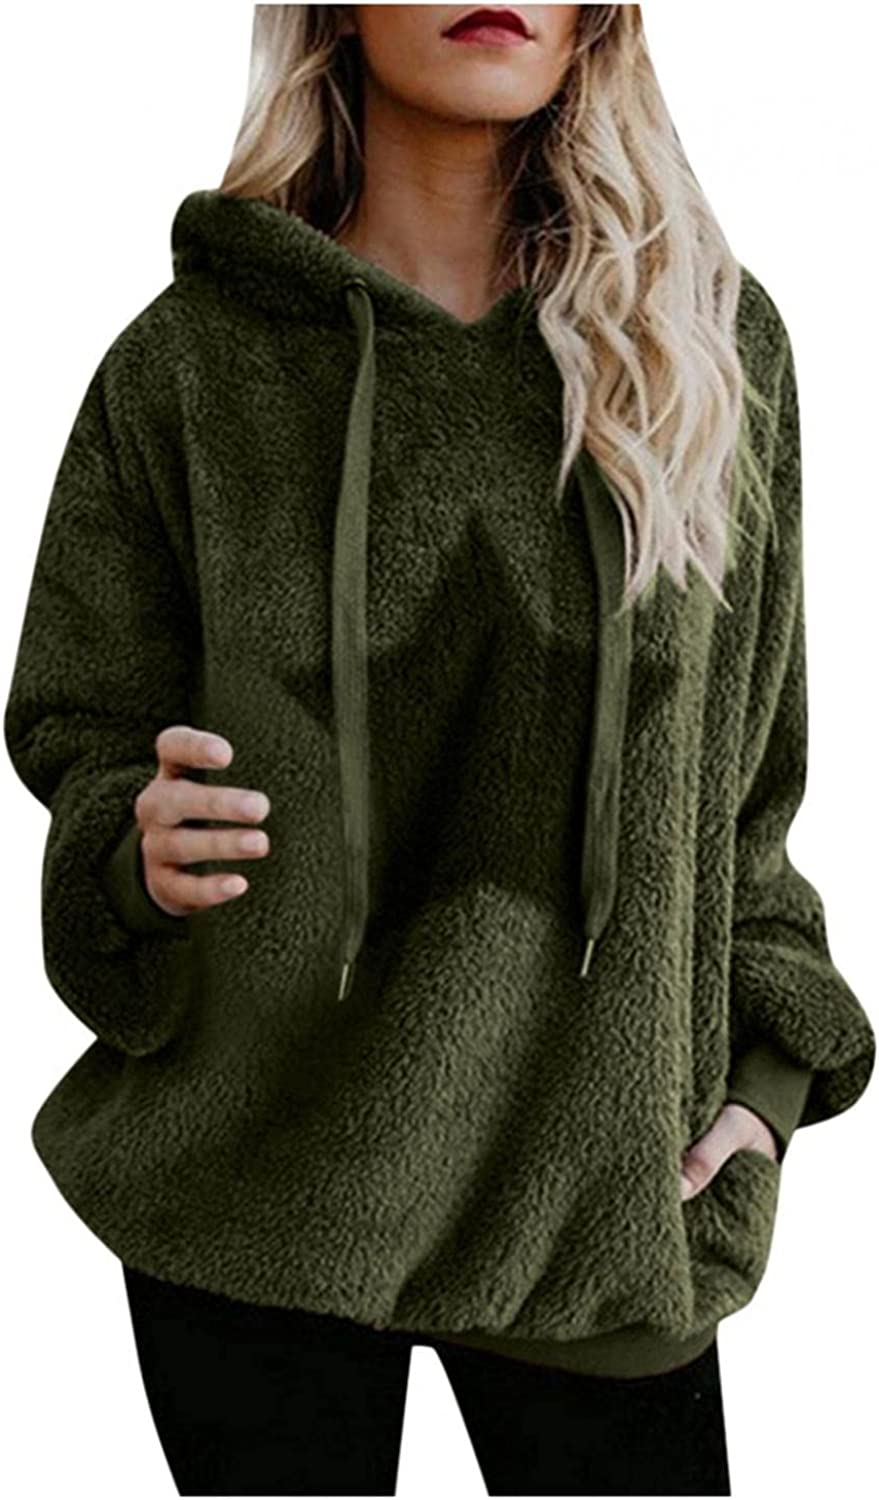 Womens Hoodies, Hooded Sweatshirts for Women Oversized Casual Double Fuzzy Long Sleeve Warm Pullover Hoodies Tops